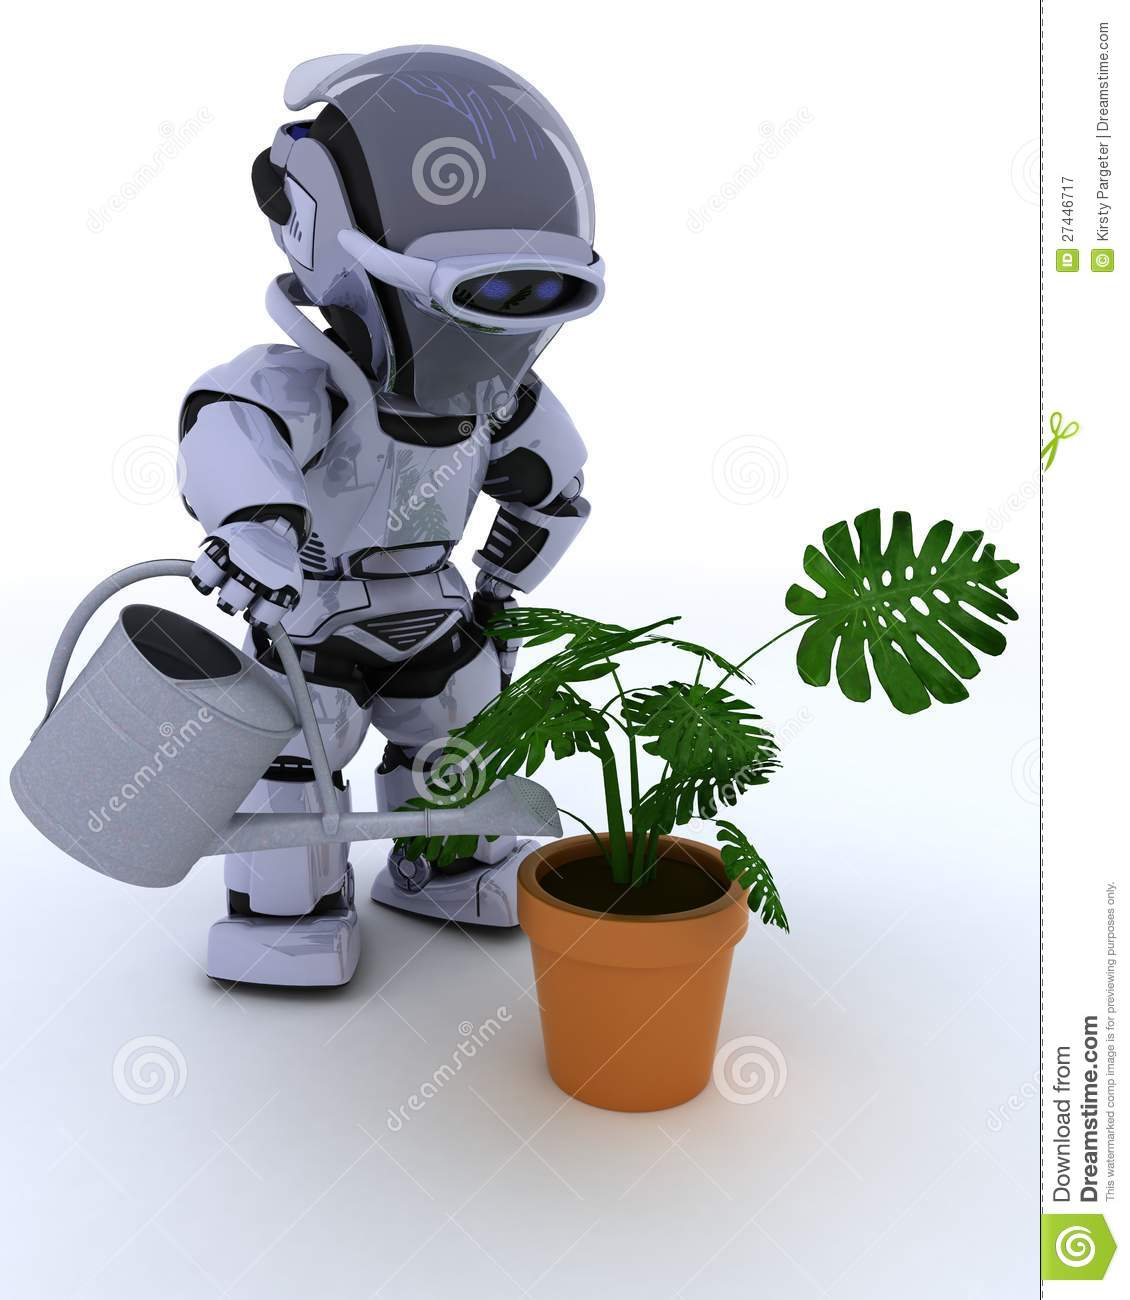 Robot watering tree outdoor vector illustration When is the best time to water your garden